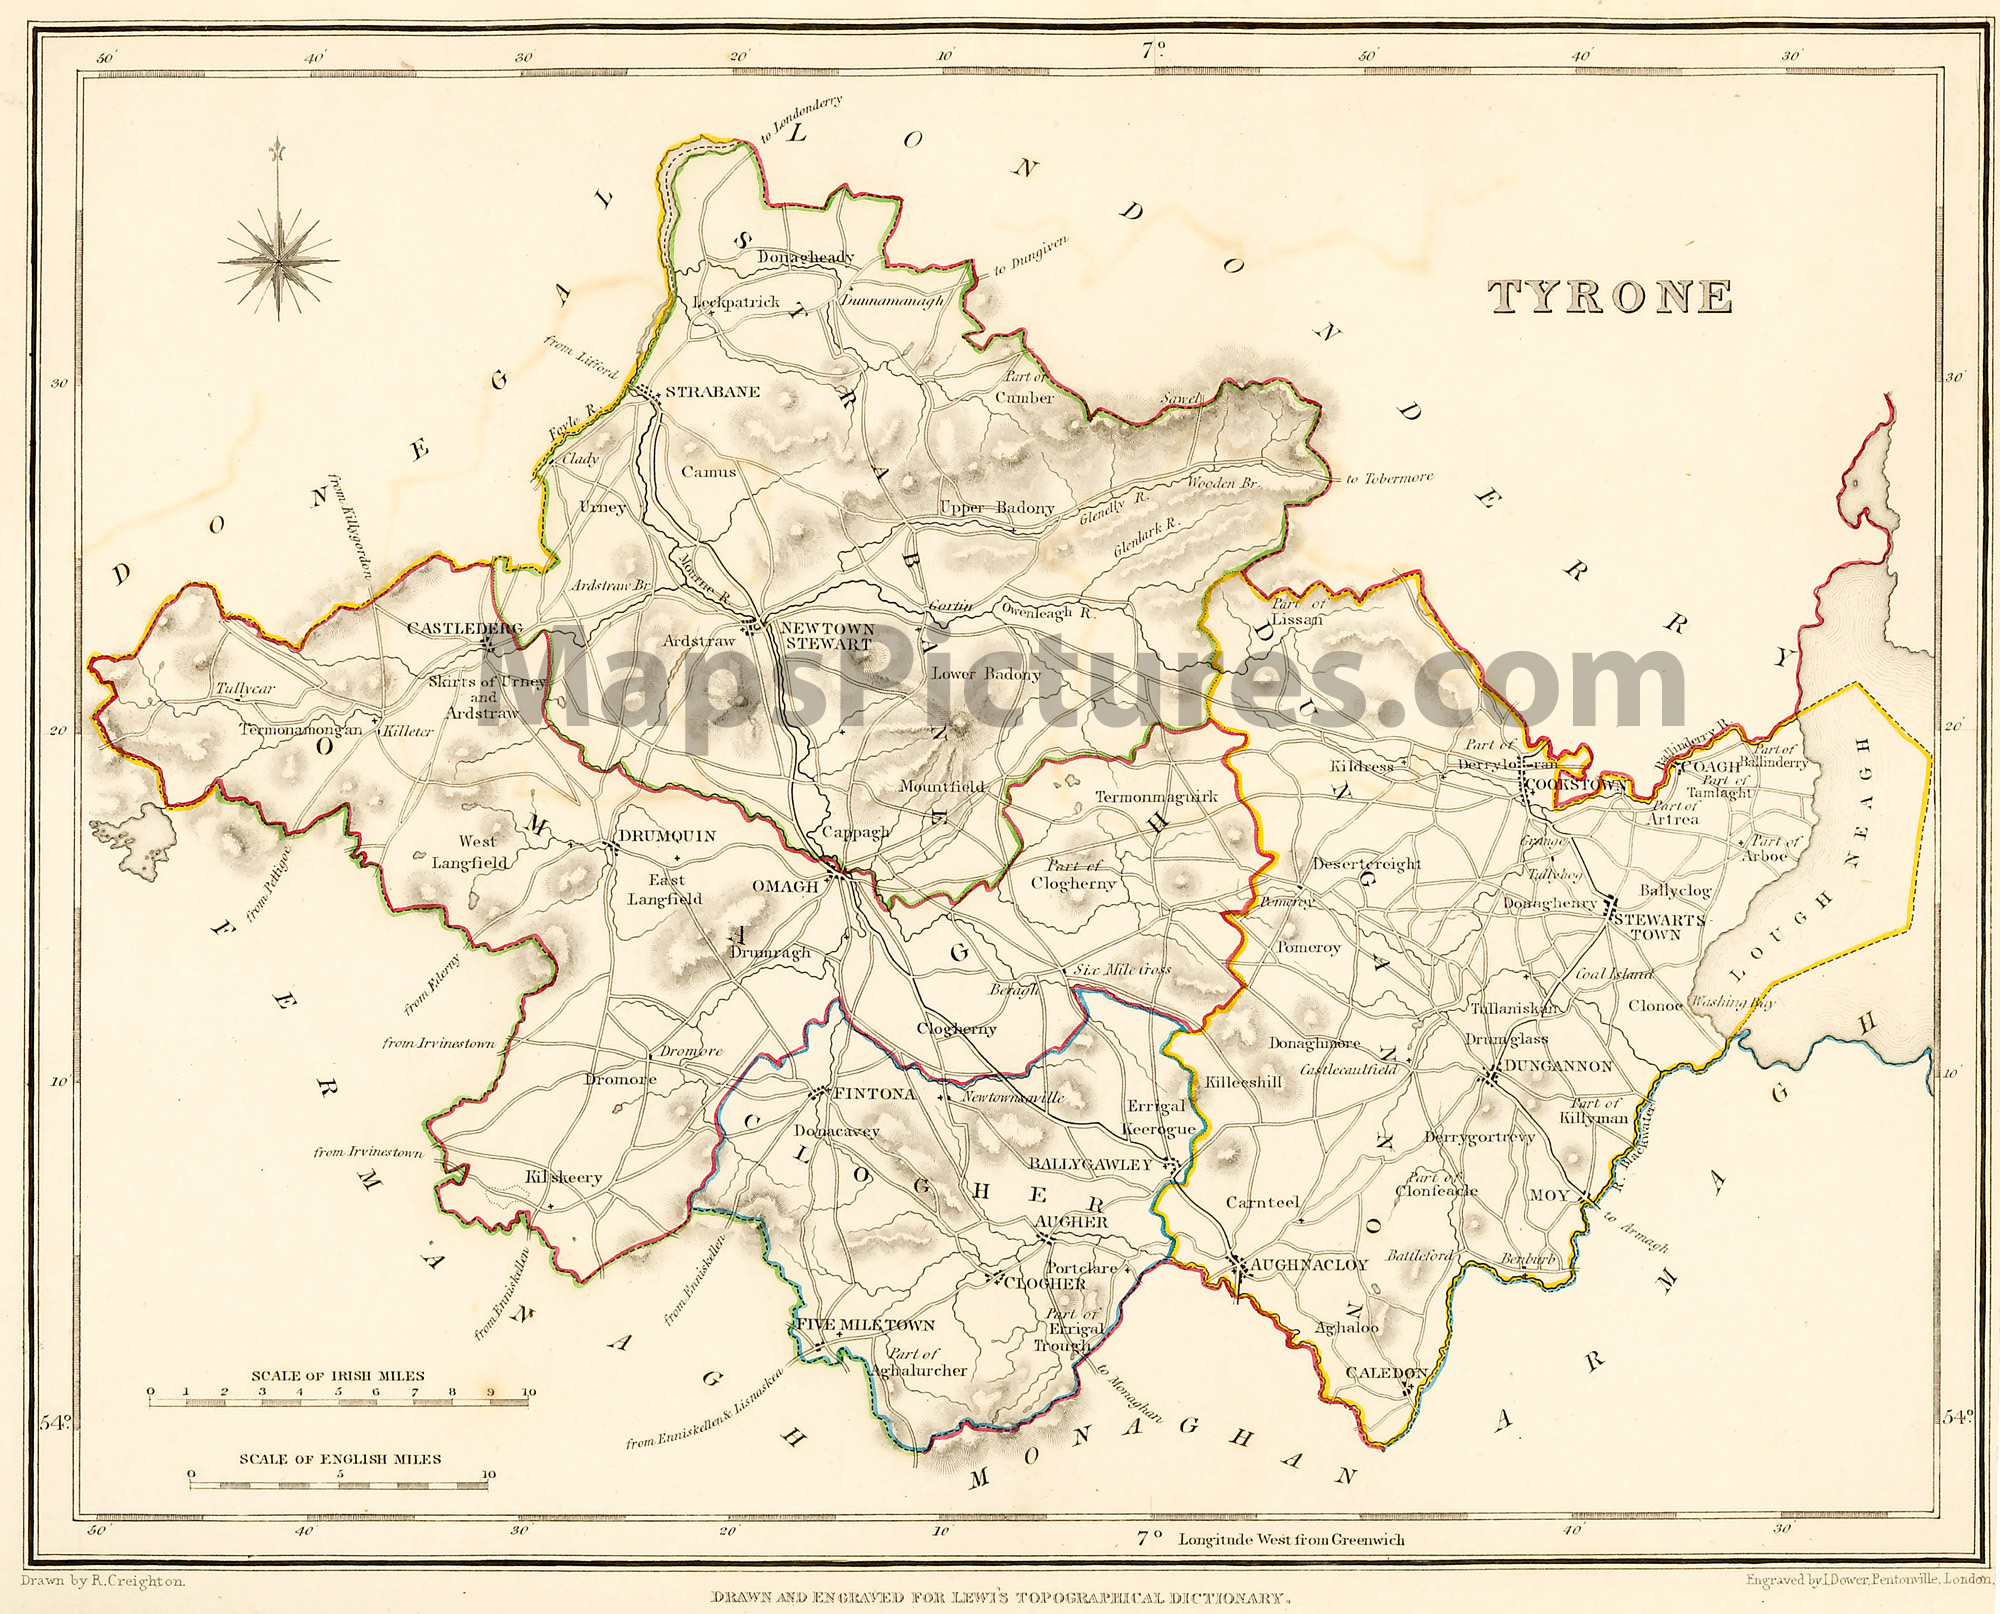 County Tyrone, 1837 map